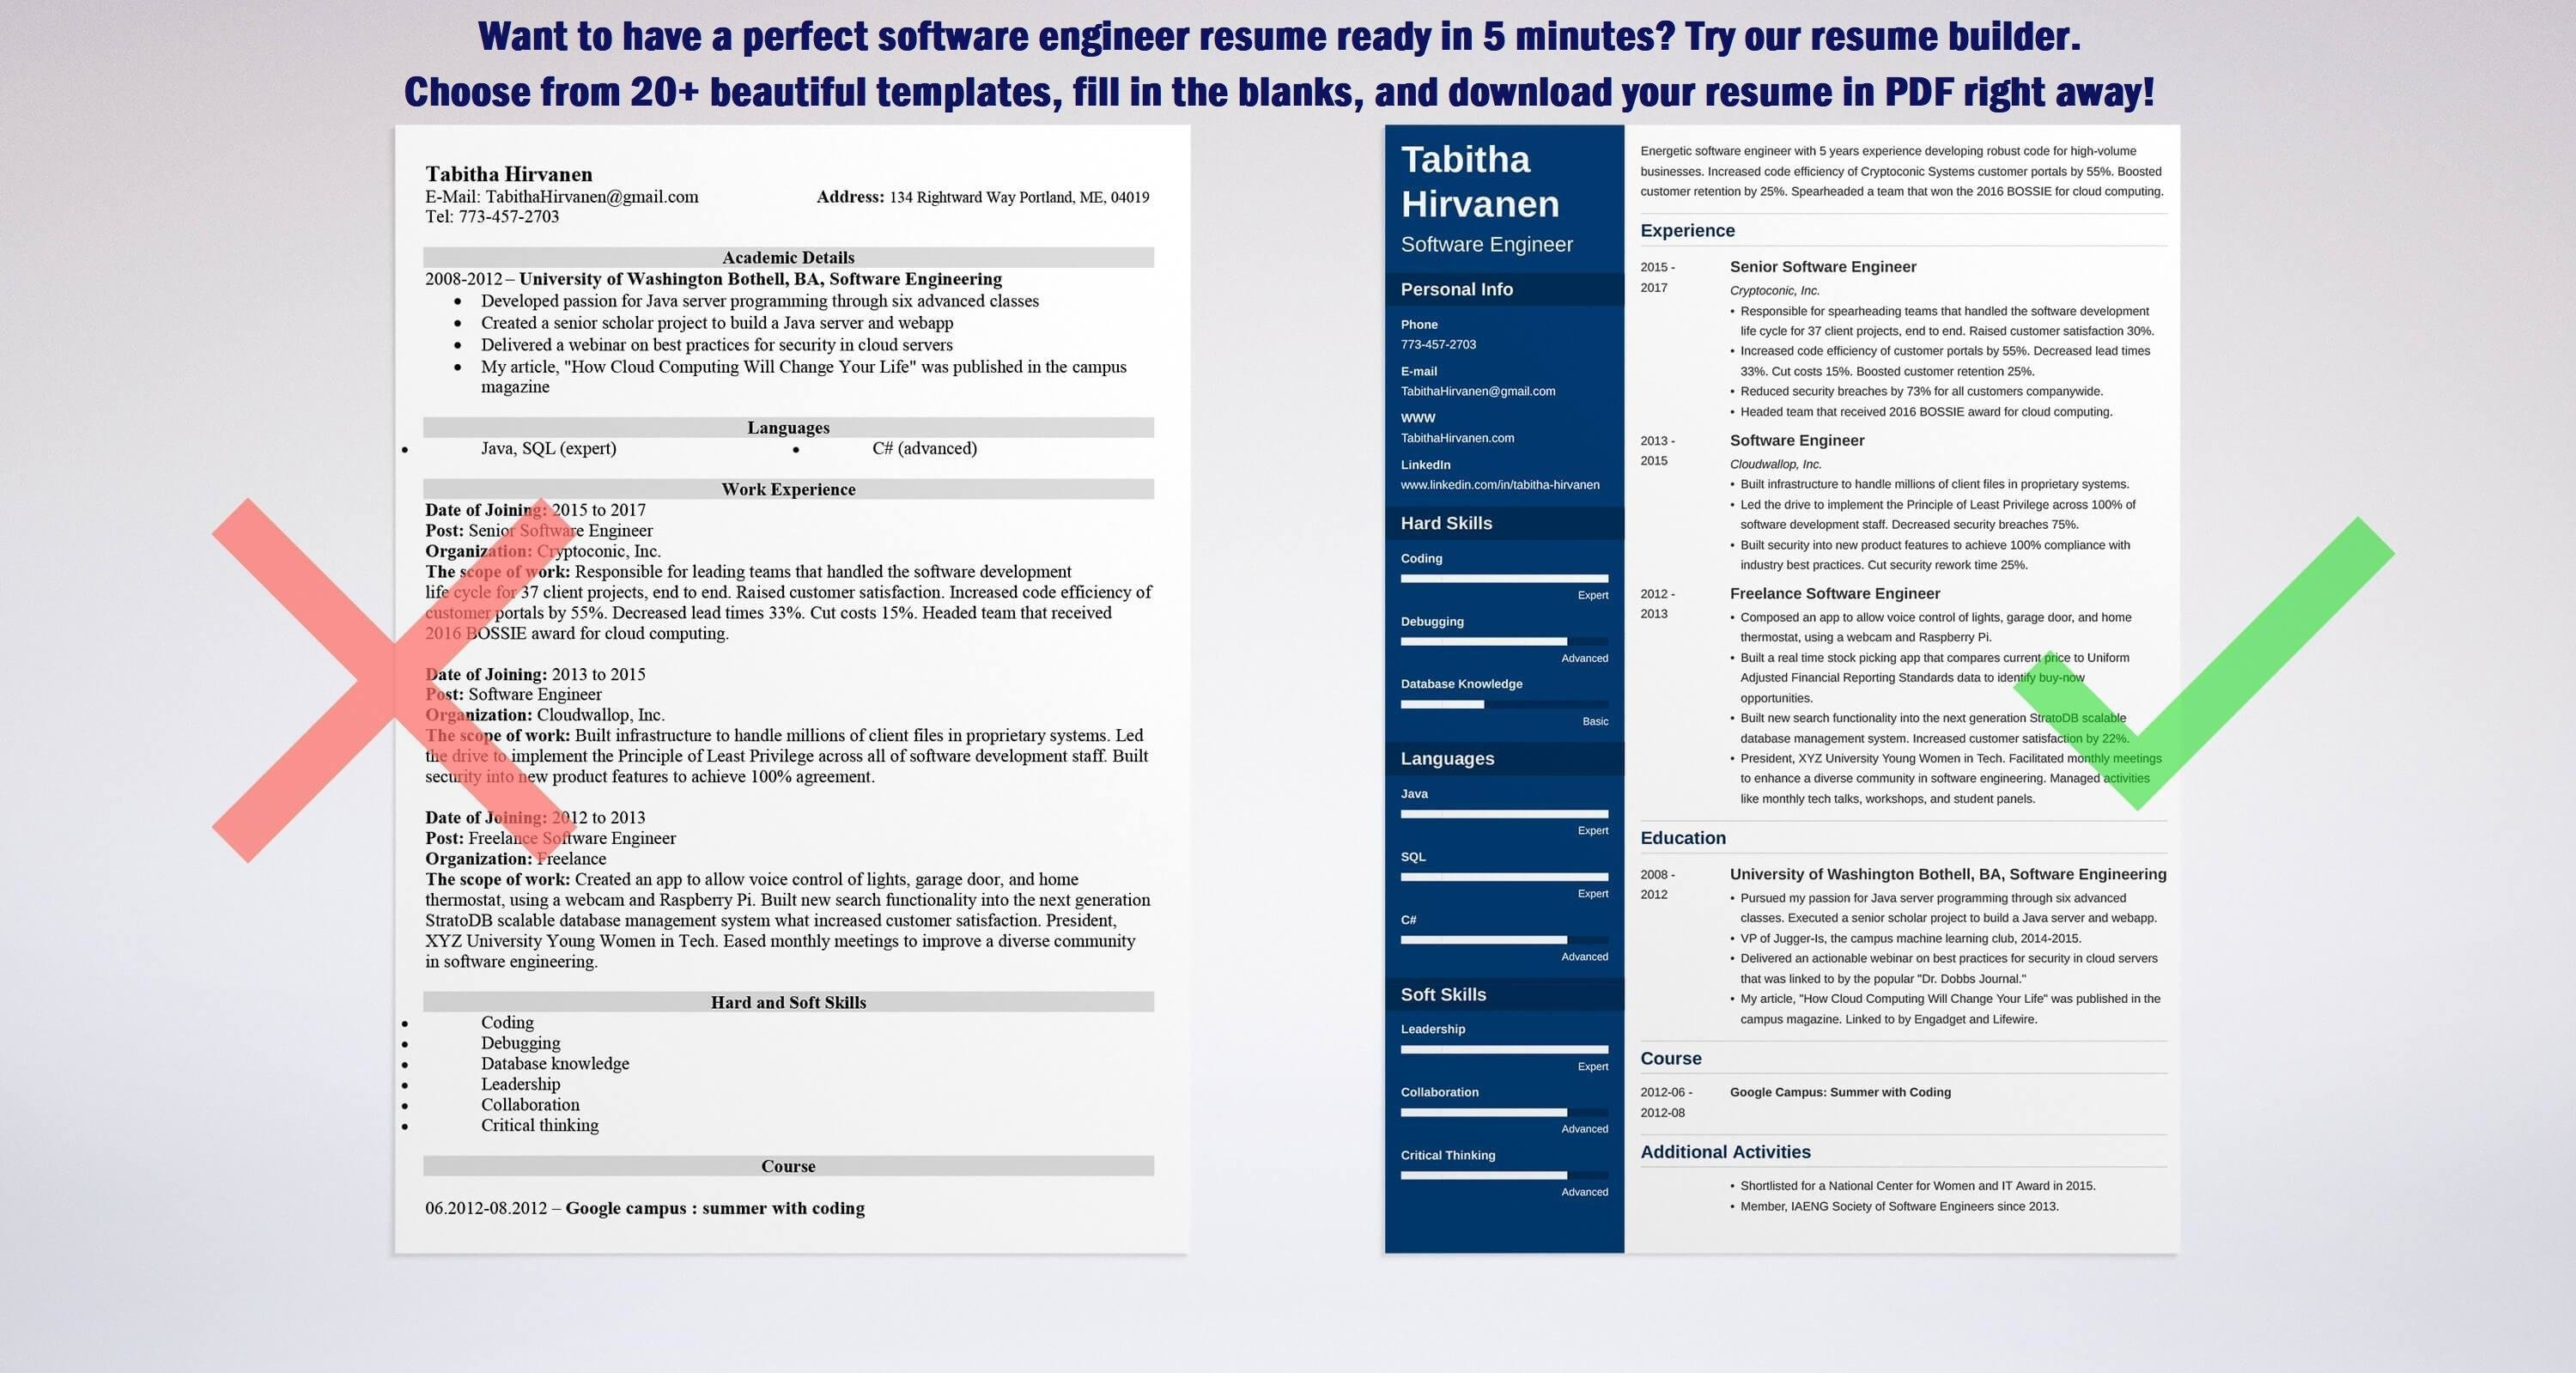 Best Resumes 2017 Unique Software Engineer Resume Guide And A Sample [48 Examples]